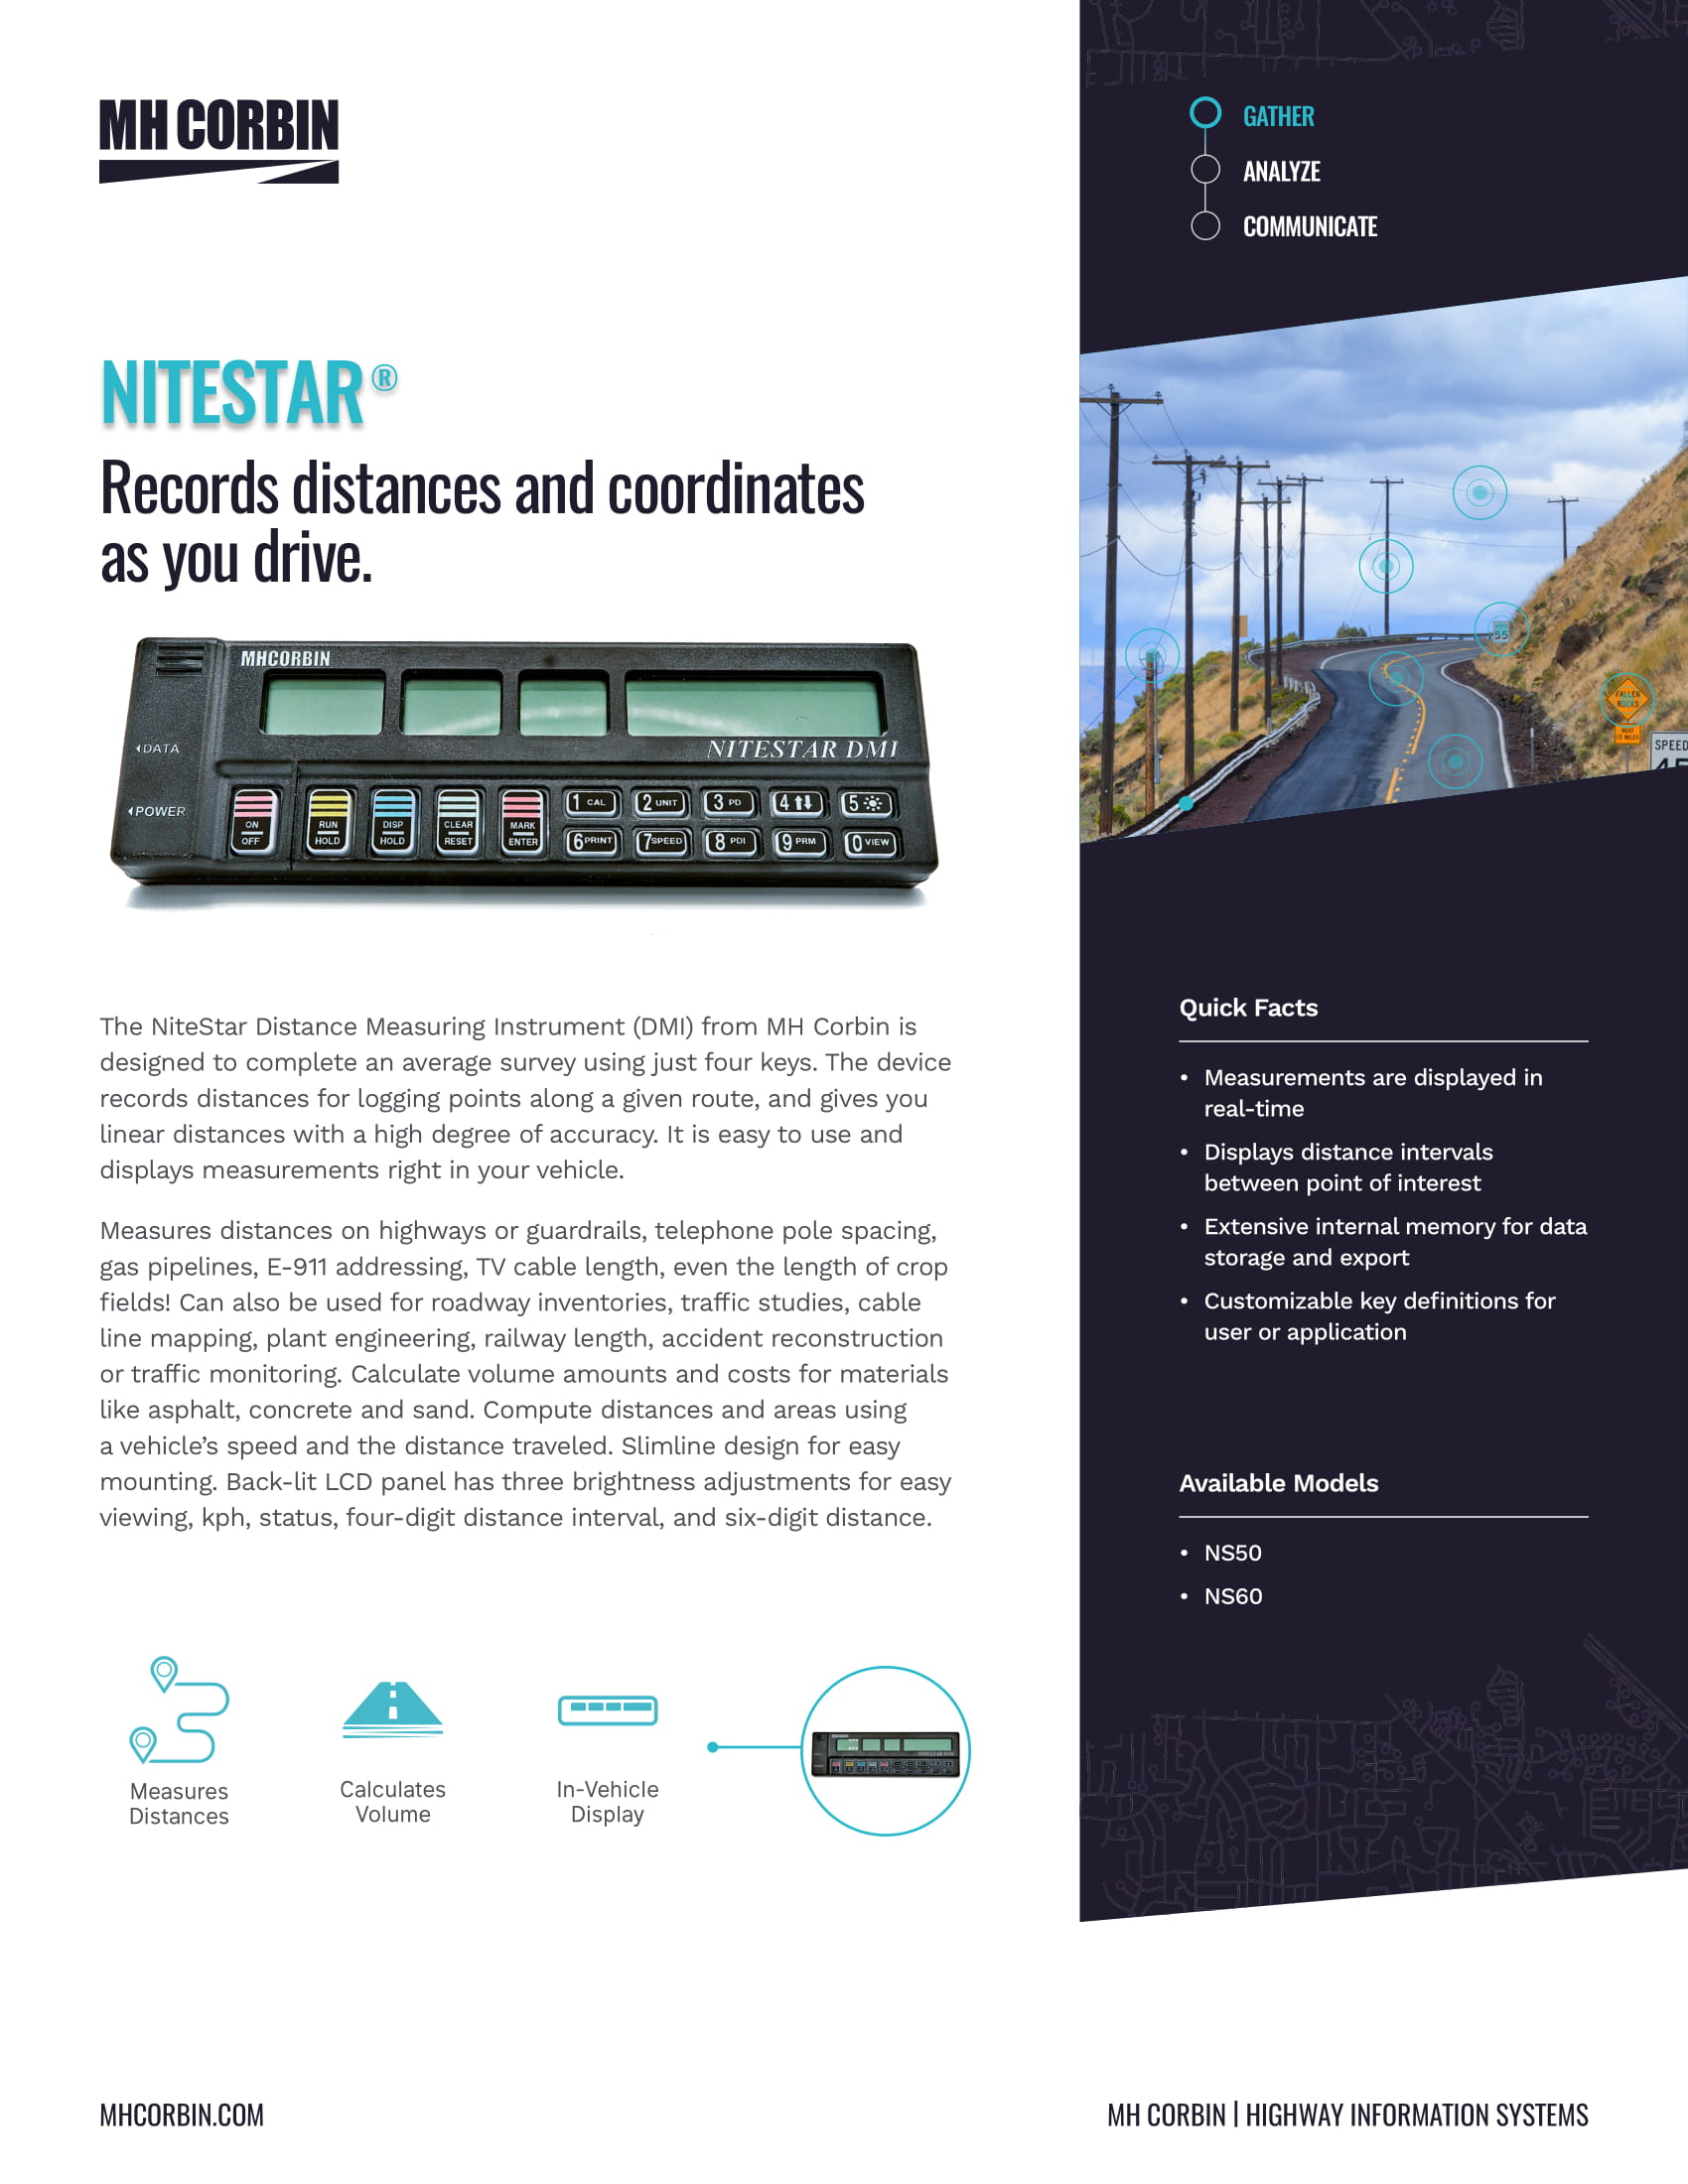 MHC_Product-Sheets_Nitestar-1.jpg